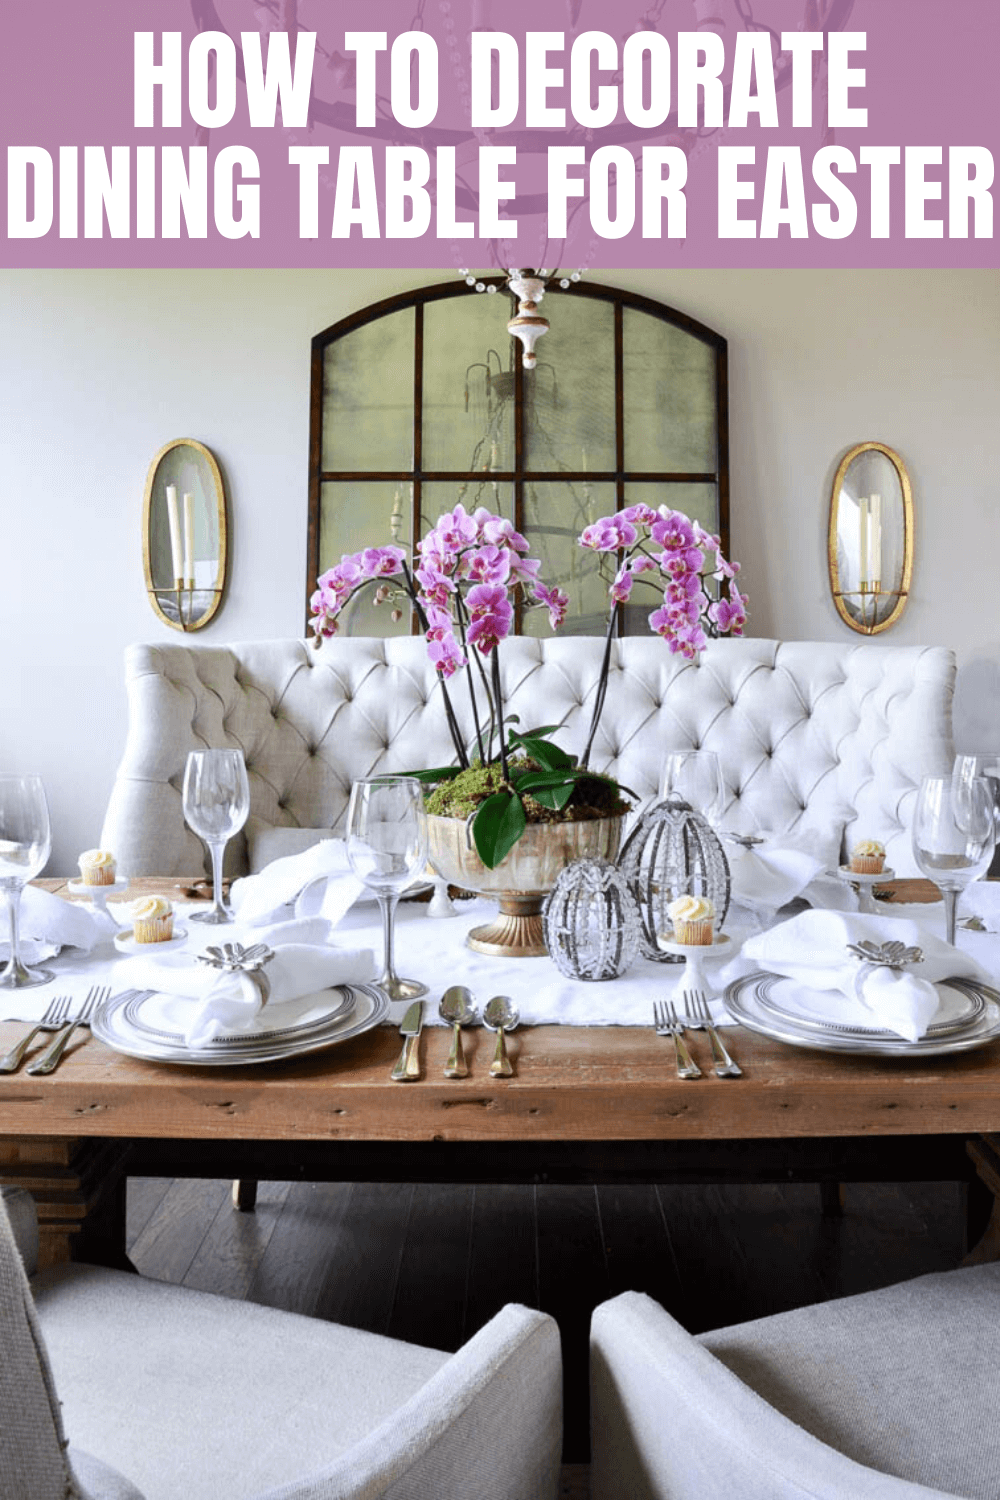 HOW TO DECORATE DINING TABLE FOR EASTER